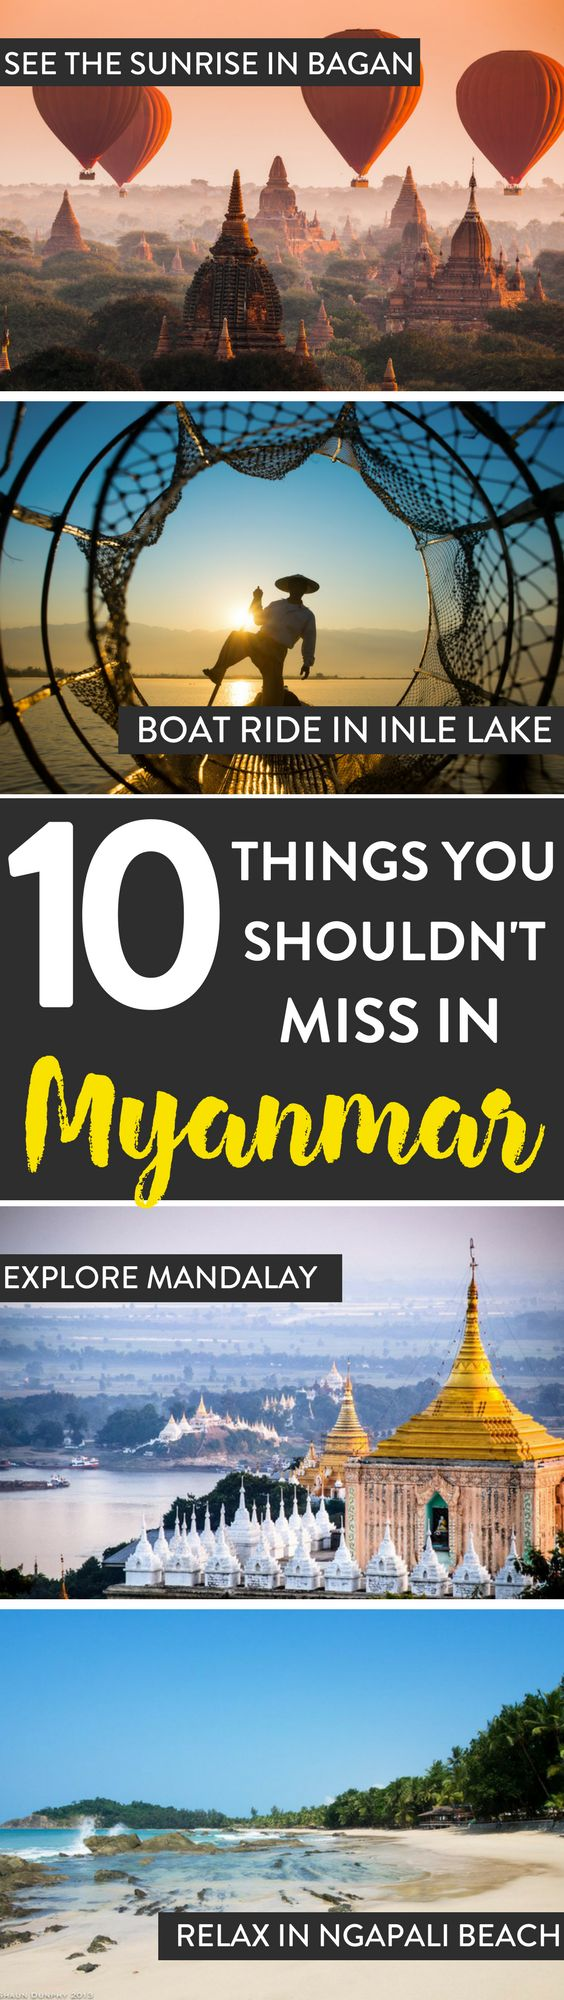 Myanmar Travel | Heading to Myanmar? Here's our list of things that you shouldn't miss while in the Myanmar. From the balloons up Bagan or Inle lake, Myanmar is full of epic adventures.